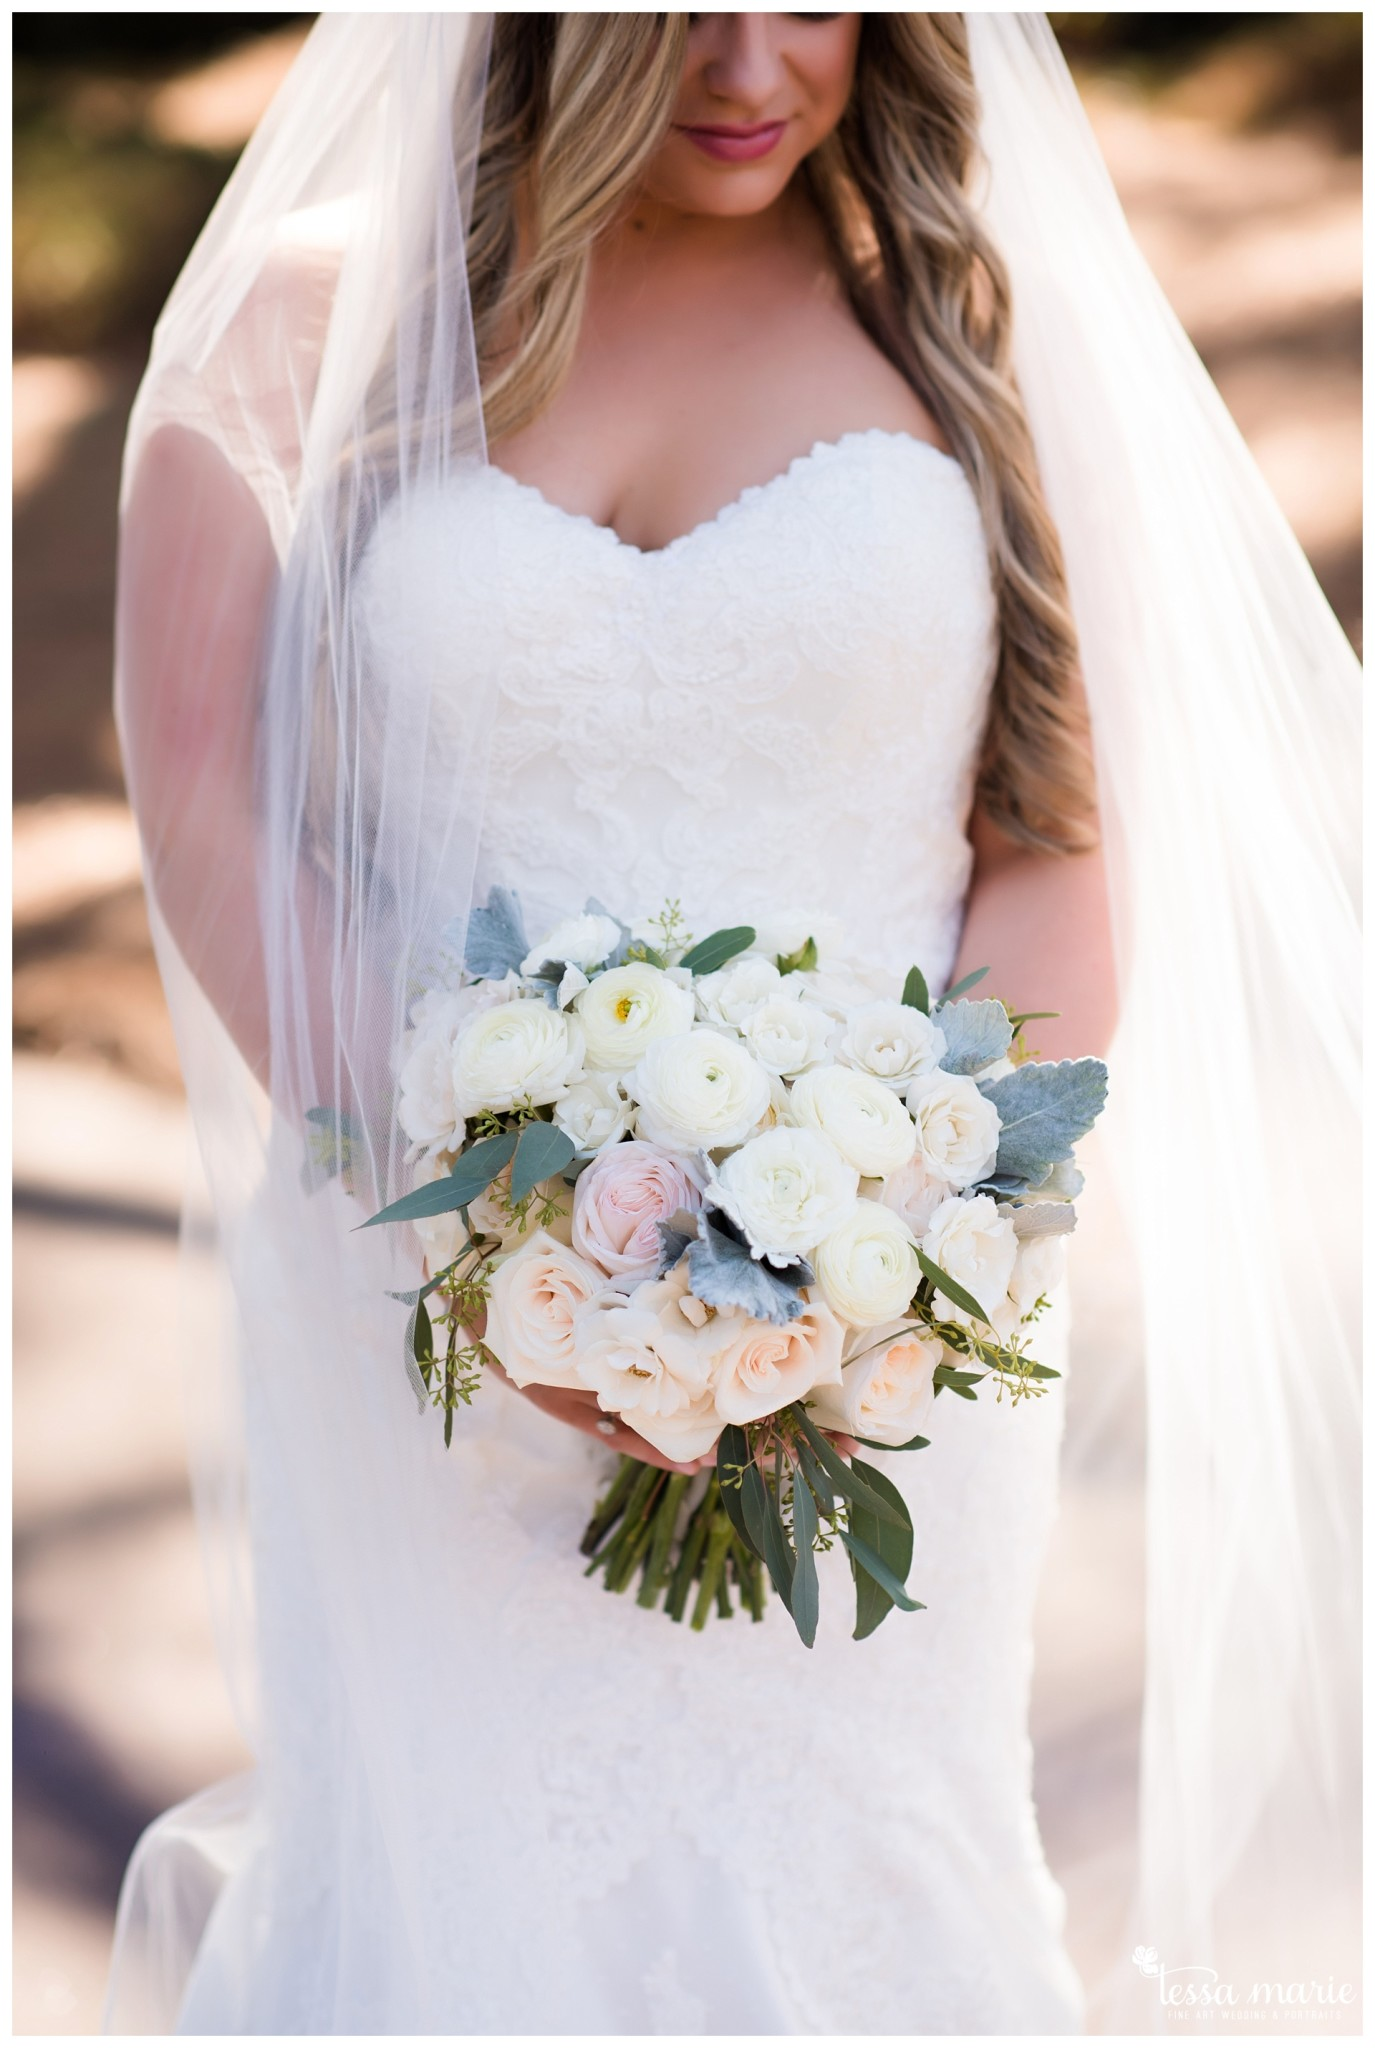 tessa_marie_weddings_legacy_story_focused_wedding_pictures_atlanta_wedding_photographer_0080